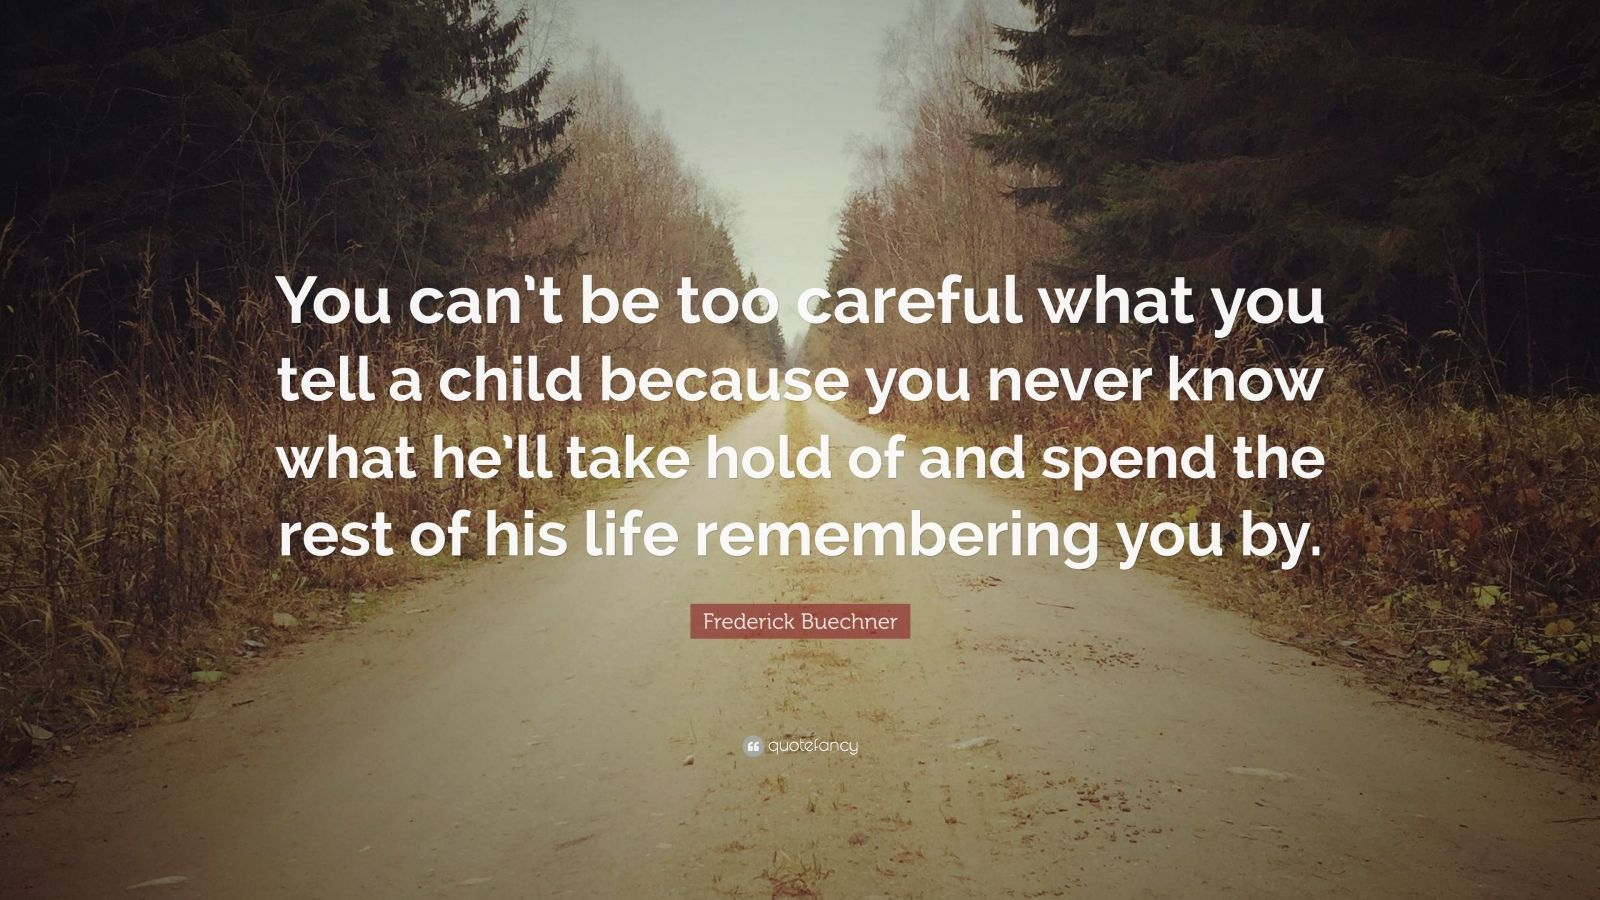 """Frederick Buechner Quote: """"You can't be too careful what you tell a child because you never know what he'll take hold of and spend the rest of his life remembering you by."""""""